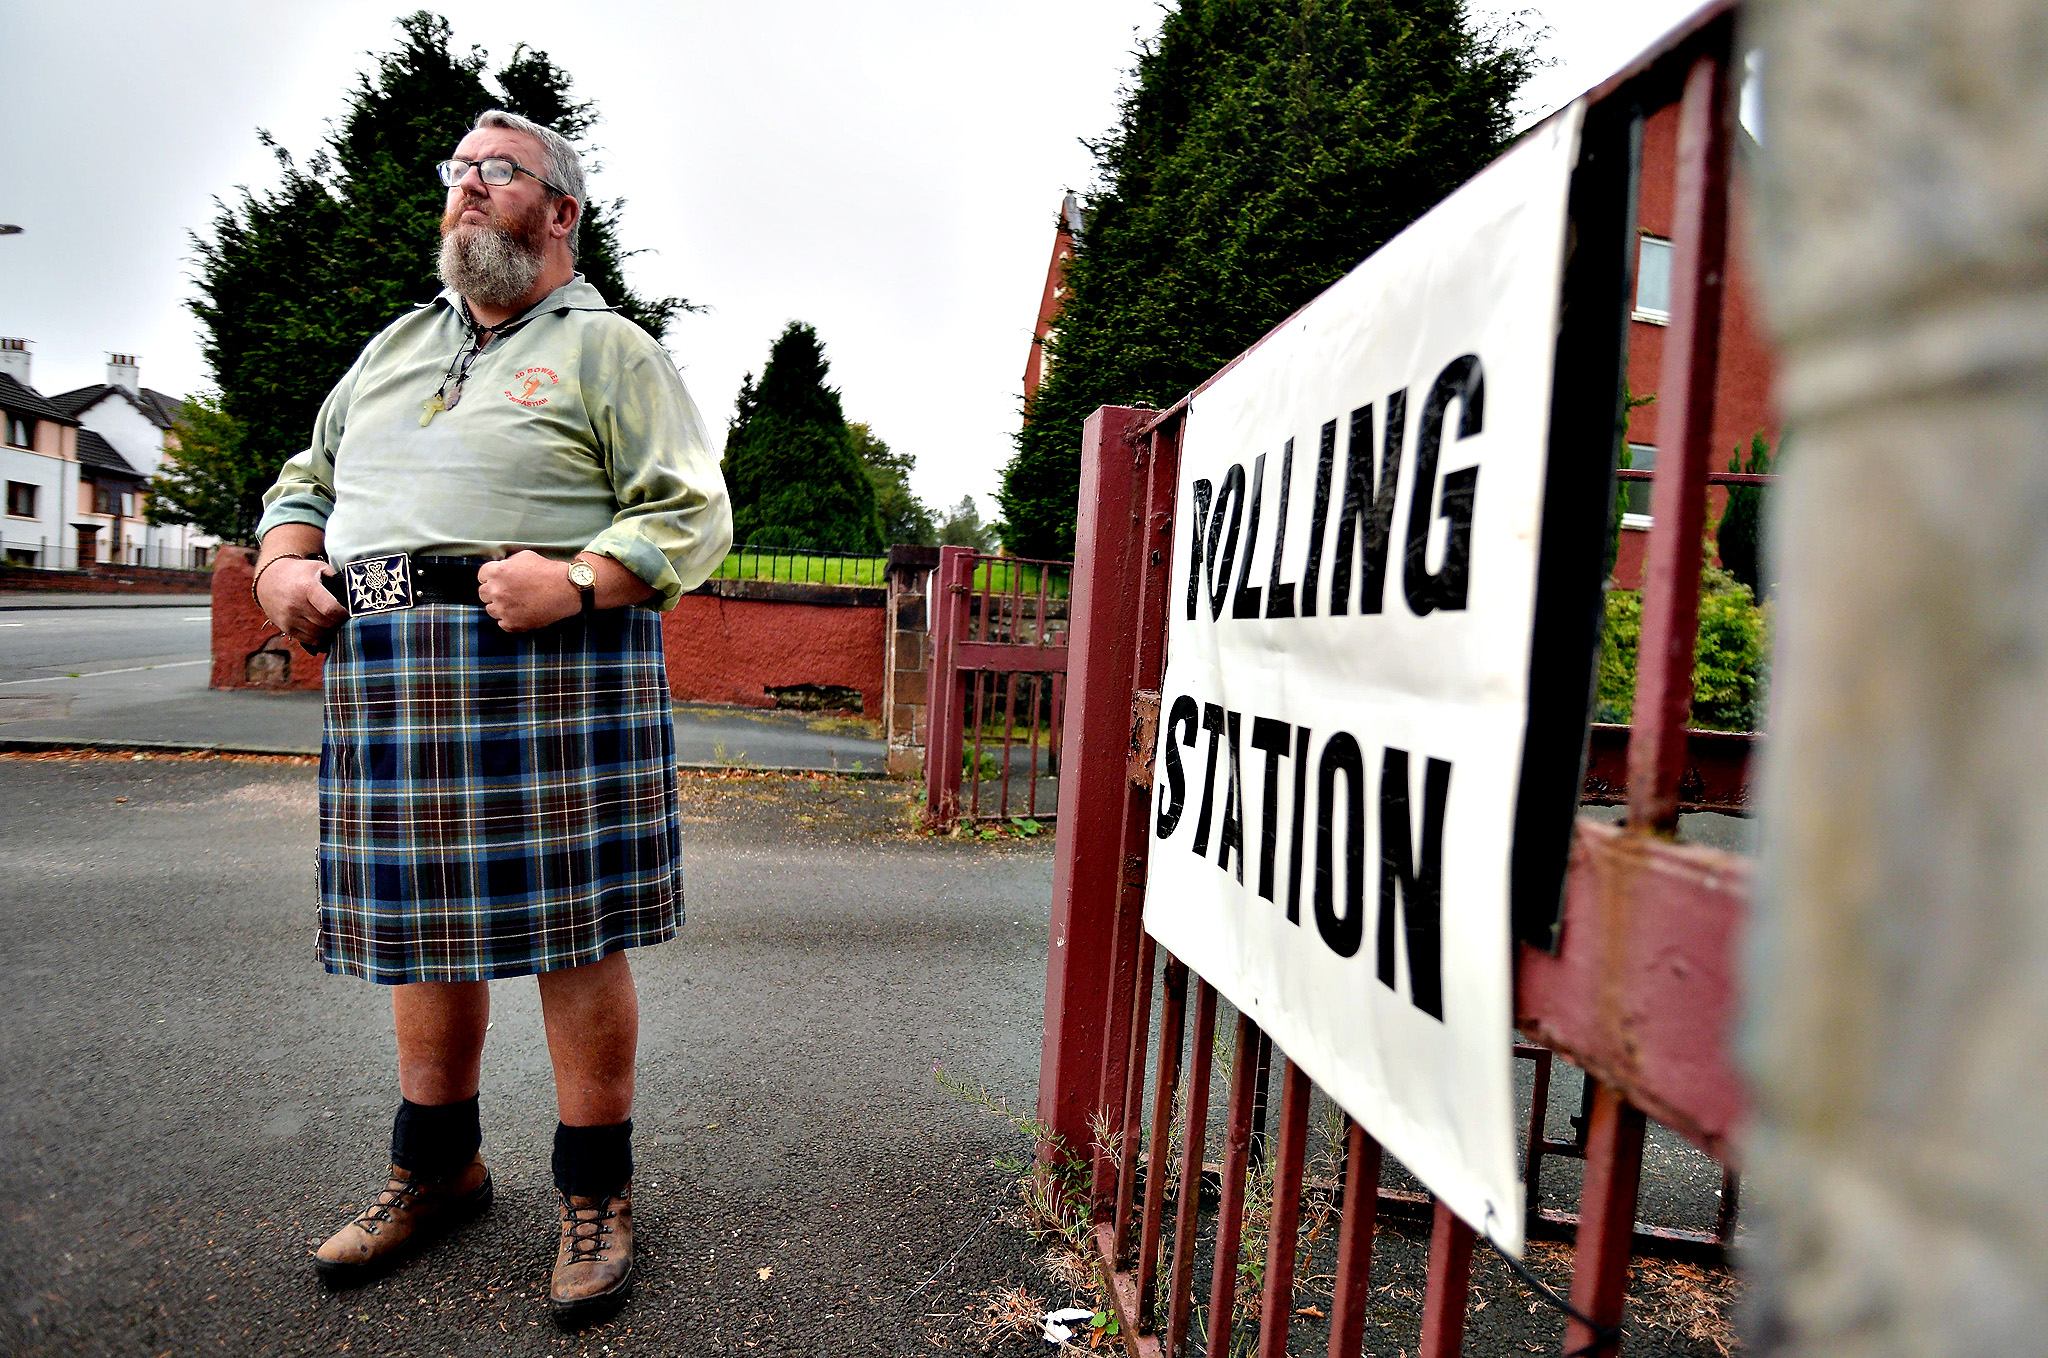 Yes voter Duncan Thomson waits for the doors to open at St Martins Church hall polling station, as the people of Scotland take to the poles to decide whether Scotland should become an independent country, on September 18, 2014 in Renton, Scotland. After many months of campaigning, final opinion poles show the referendum result is still  too close to call.